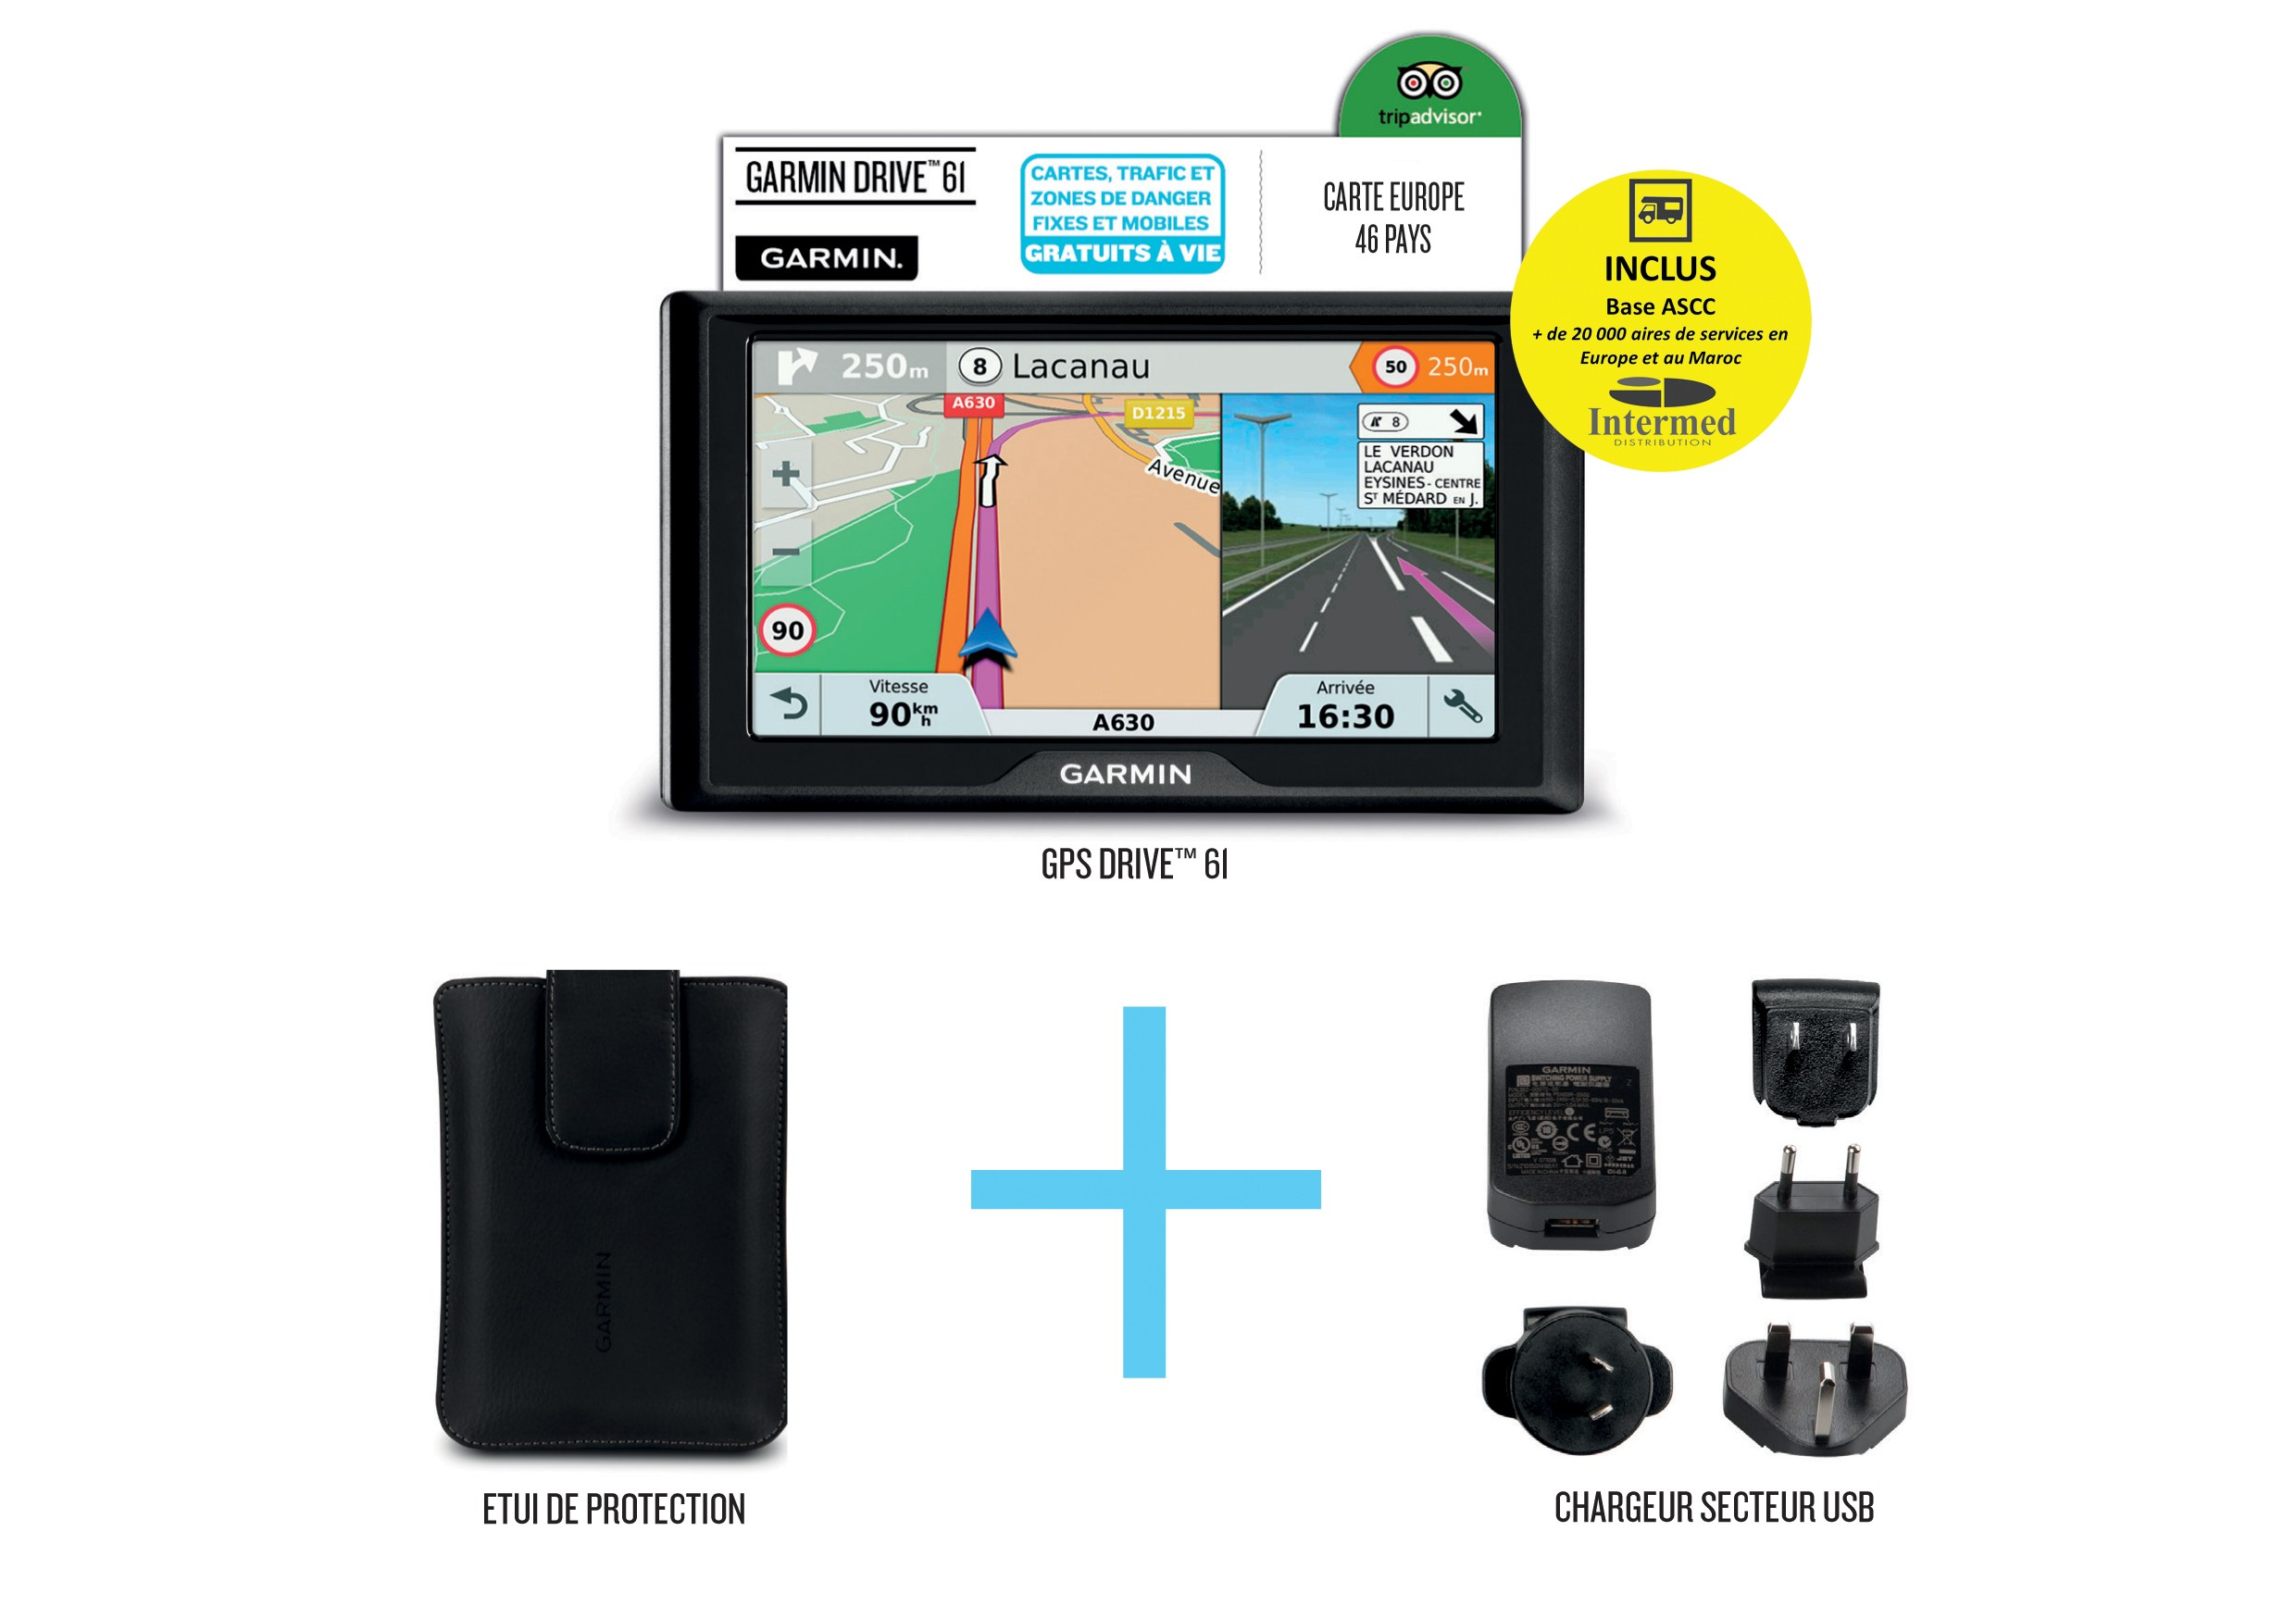 PACK FOURGON GARMIN